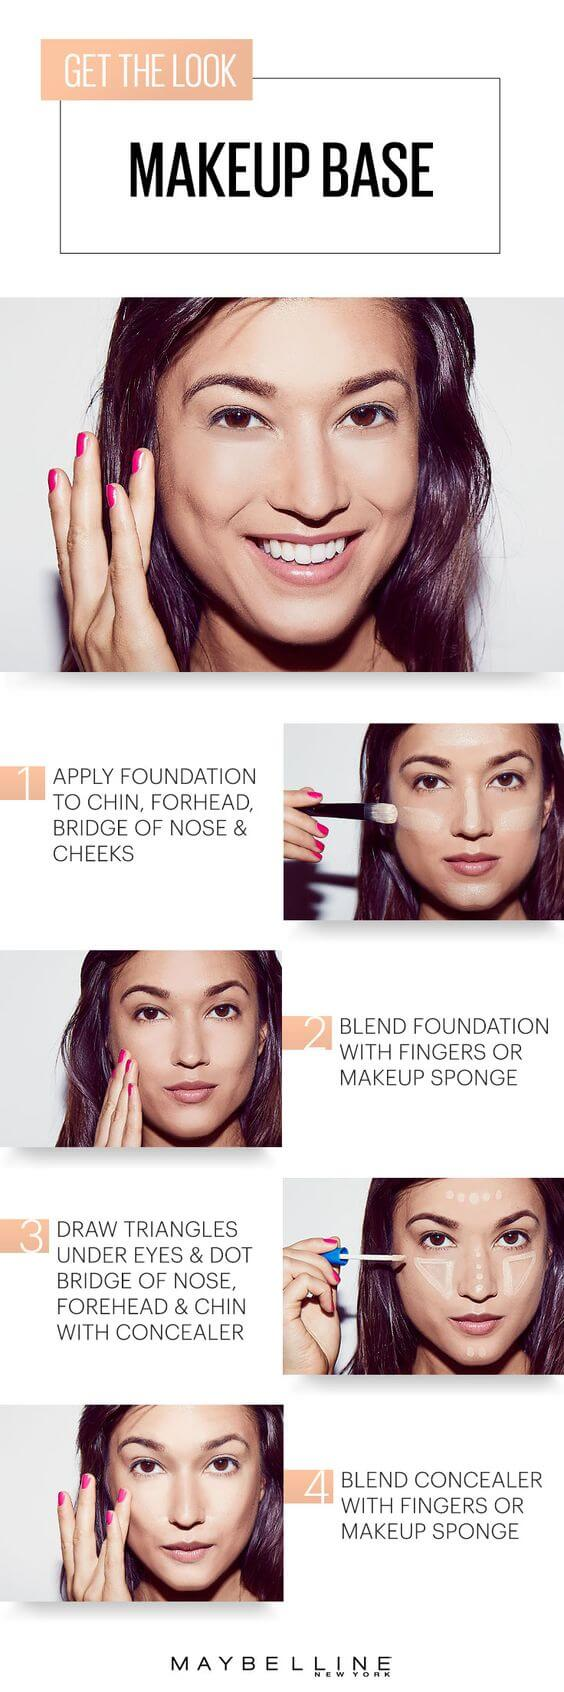 Just like a building needs a strong foundation, a good makeup look starts with a good base. Just follow this easy tutorial to achieve that flawless base!